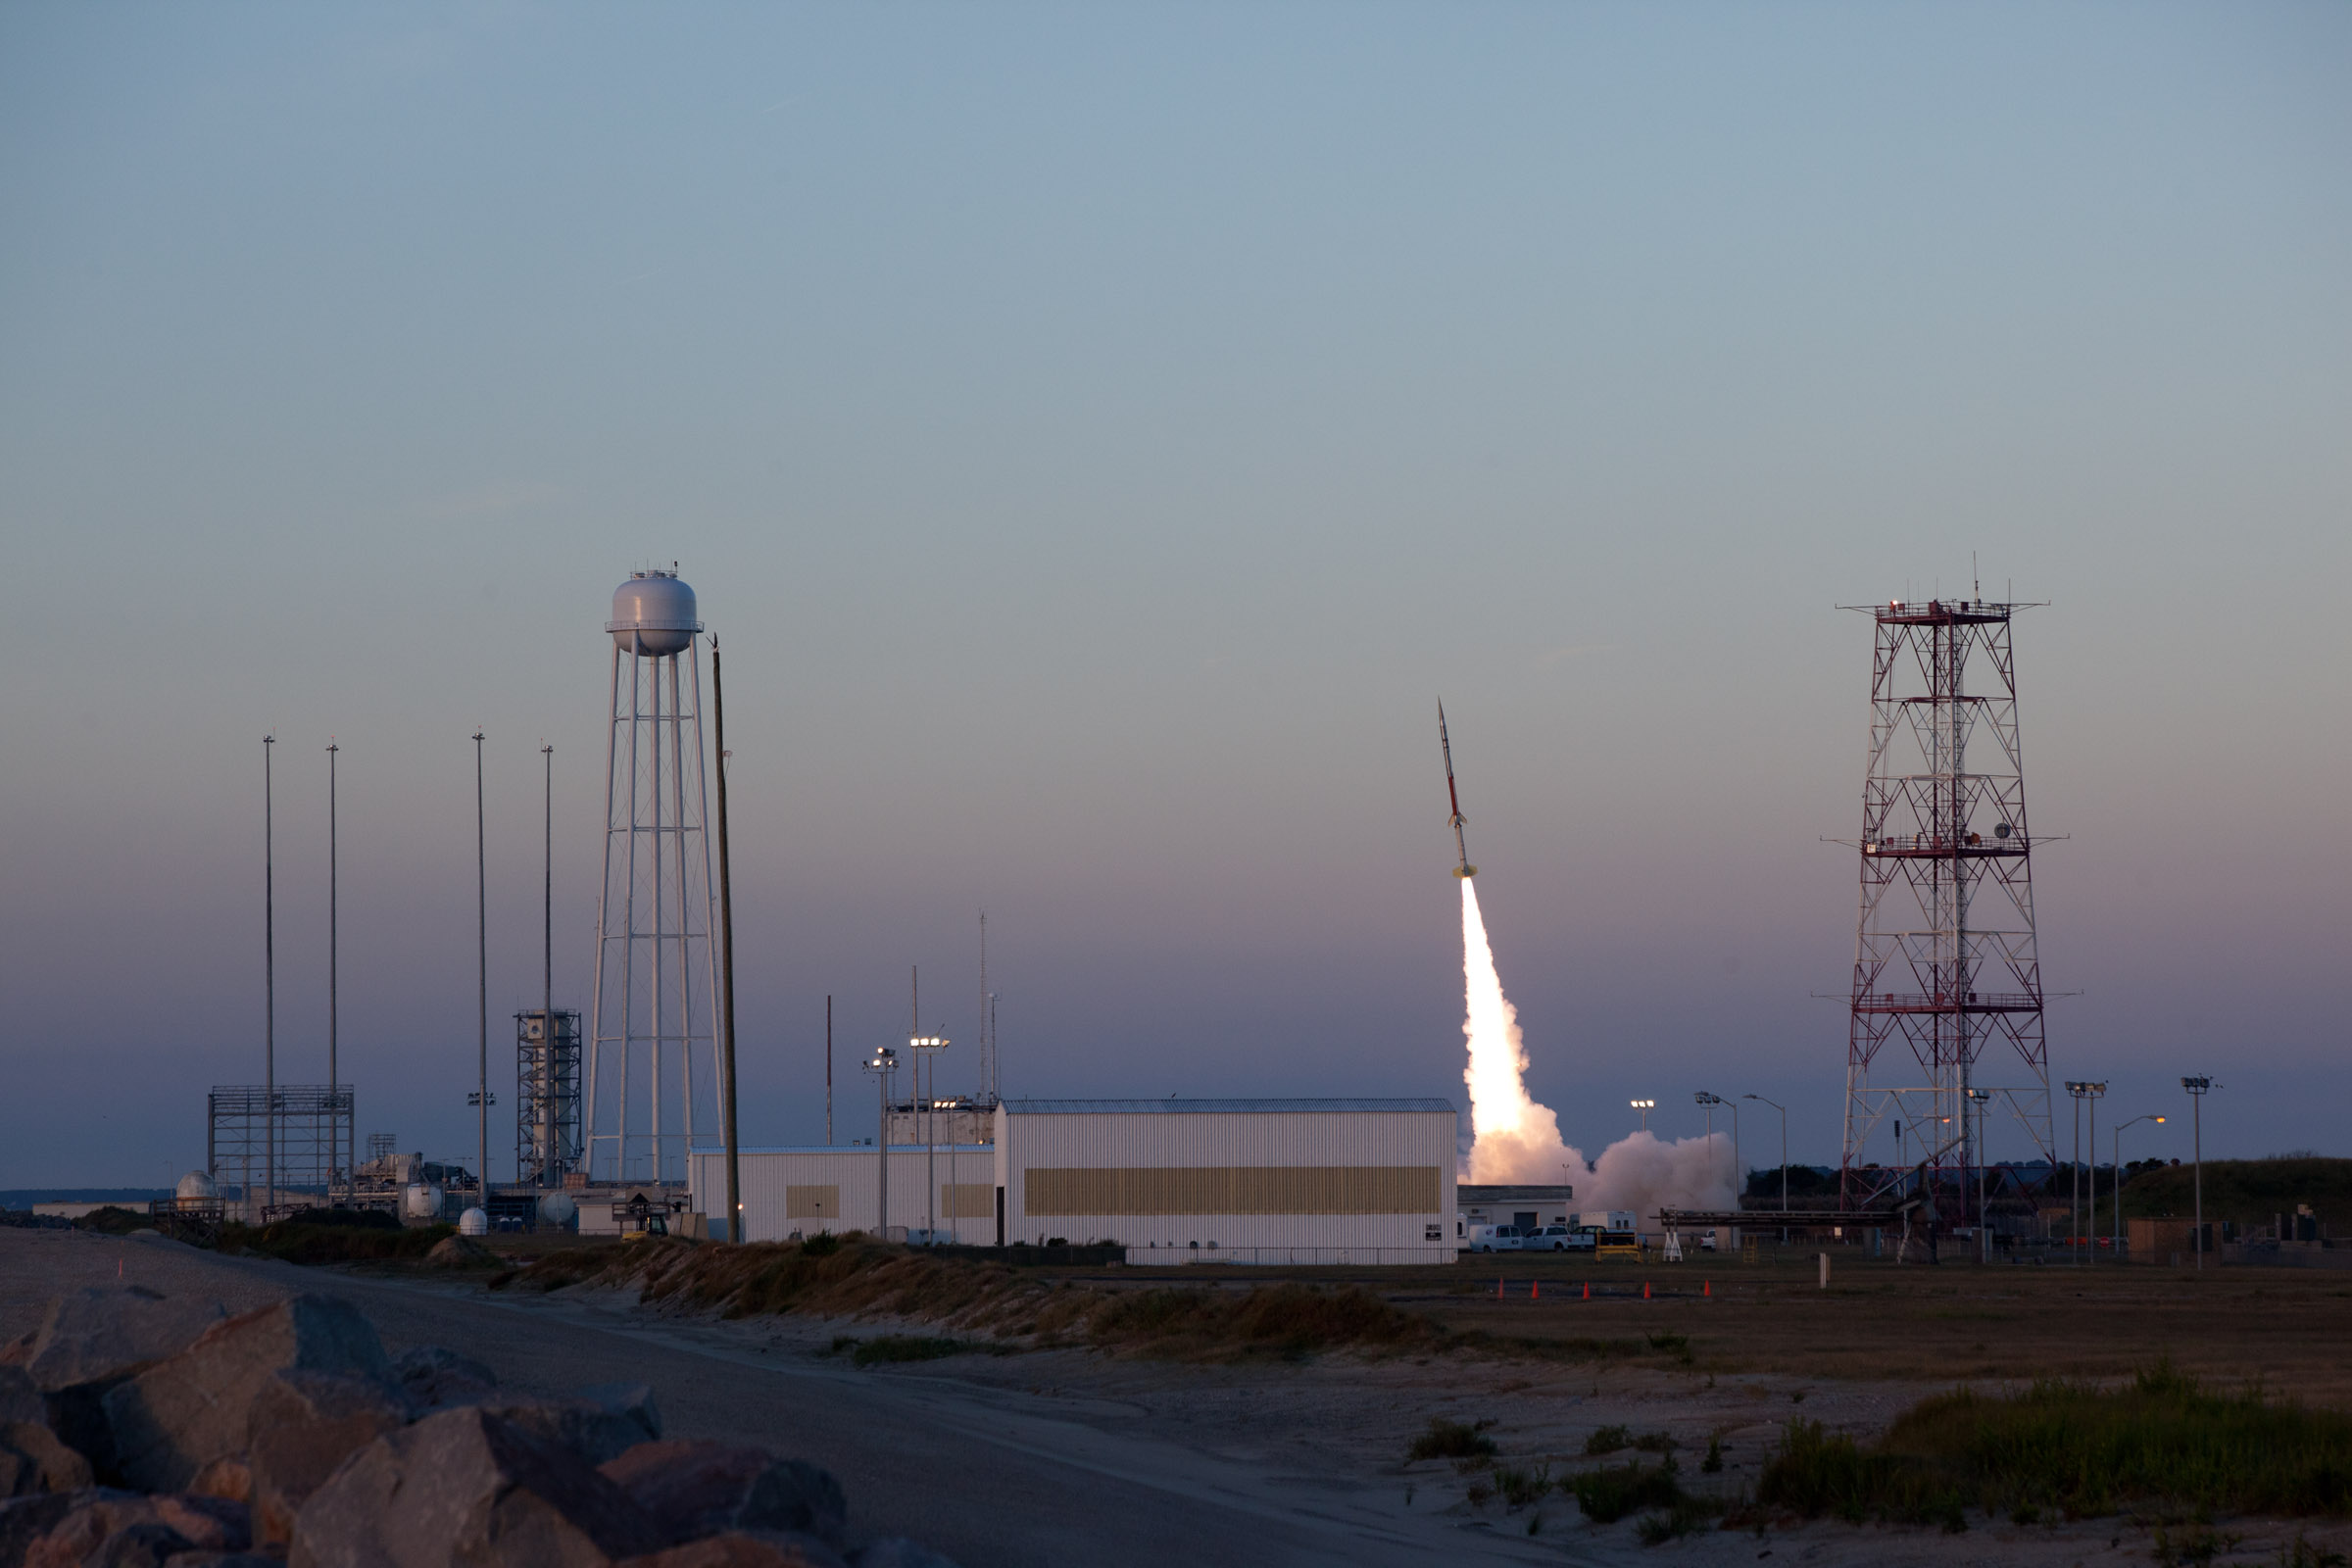 RockSat-X launches from NASA's Wallops Flight Facility, Va., Sept. 21.